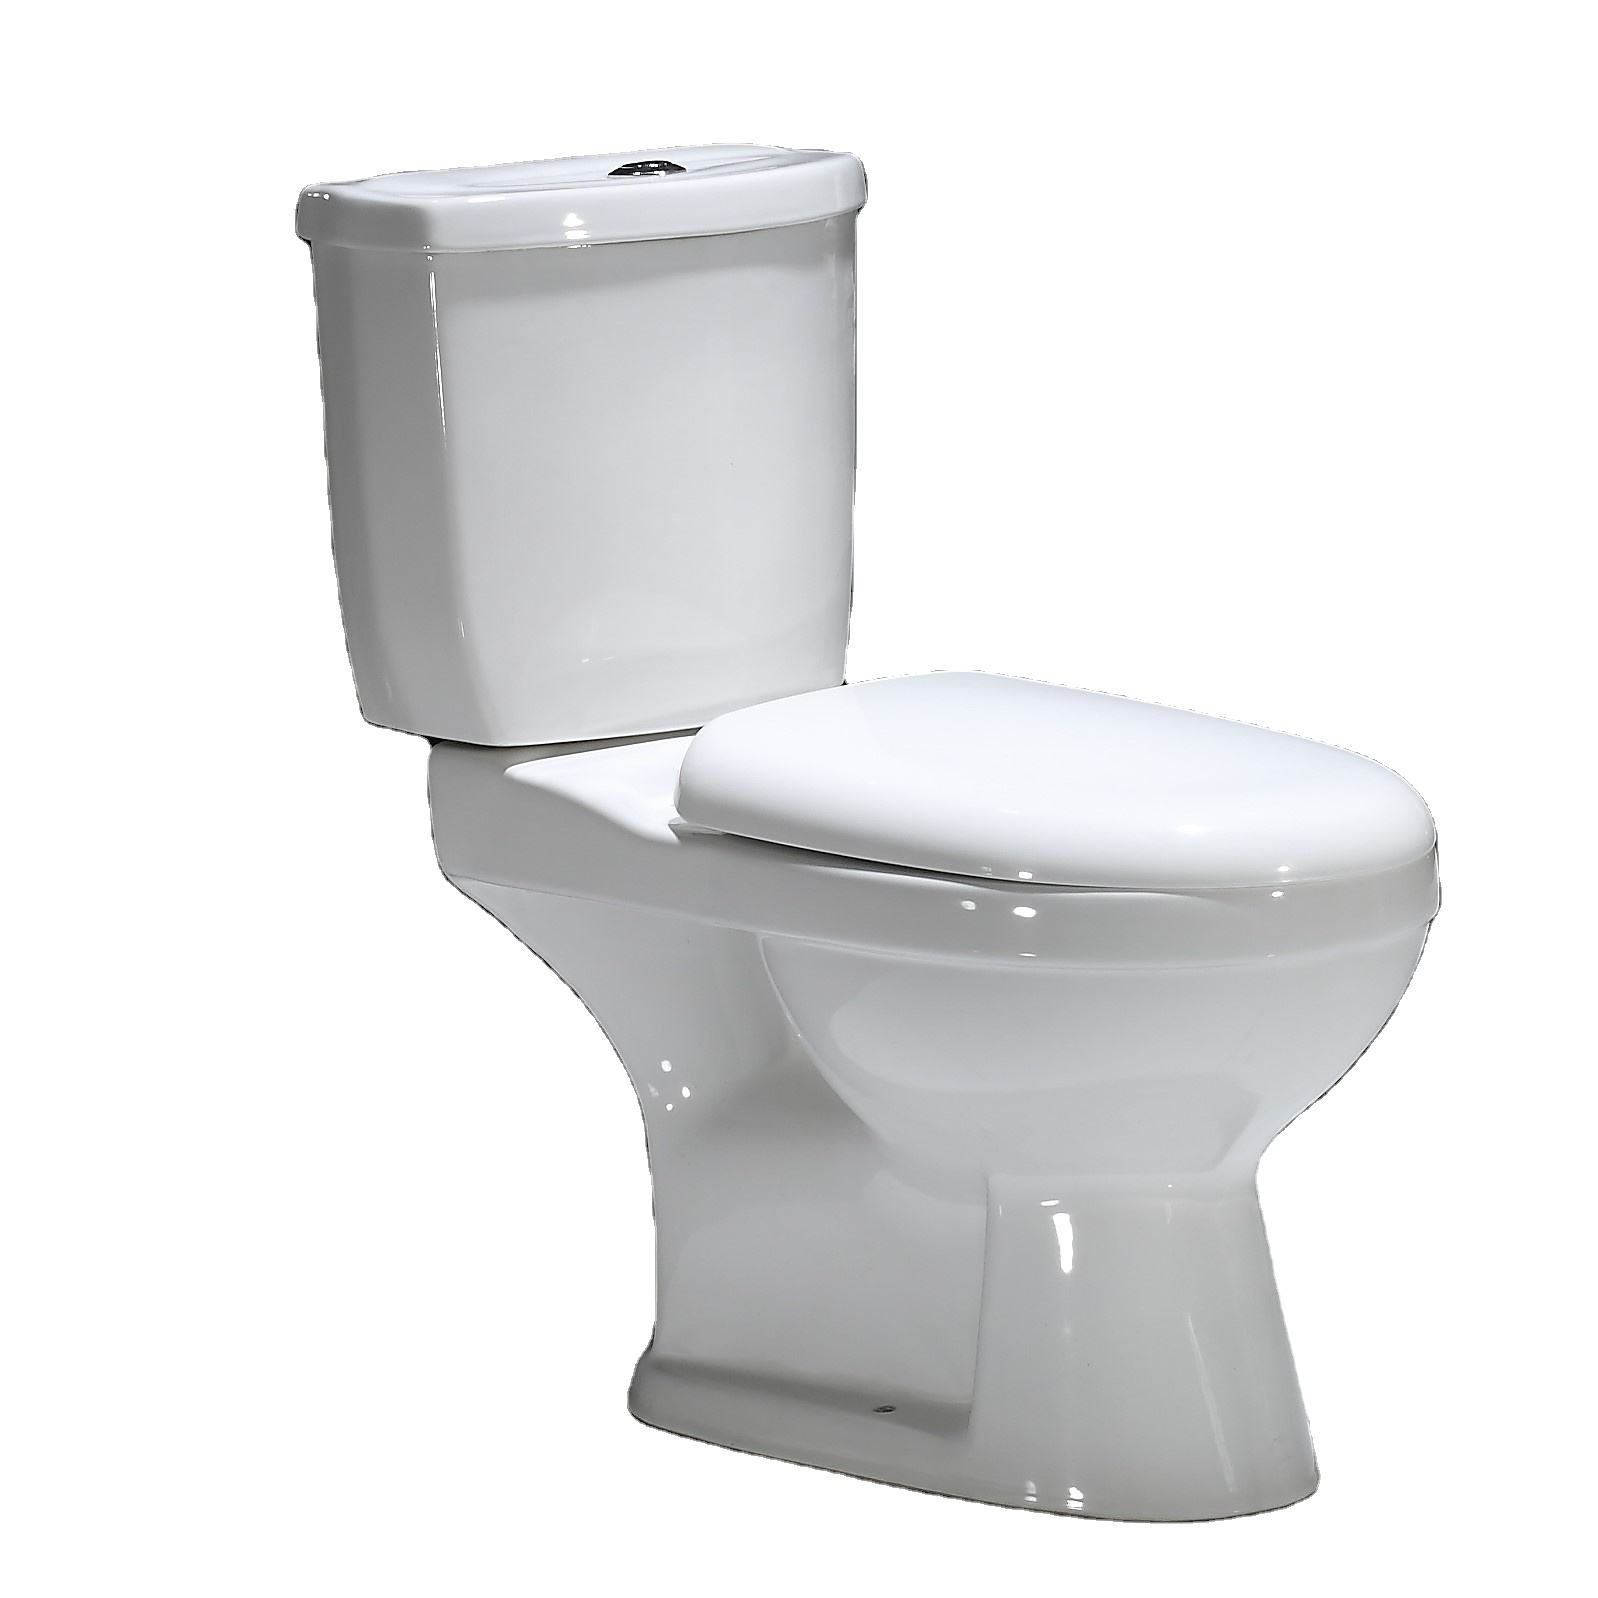 GX015 Washdown Bathroom Prices Modern P Trap Peeing Girl Chinese WC Sanitary Ceramic Ware Two Piece Toilet Bowl